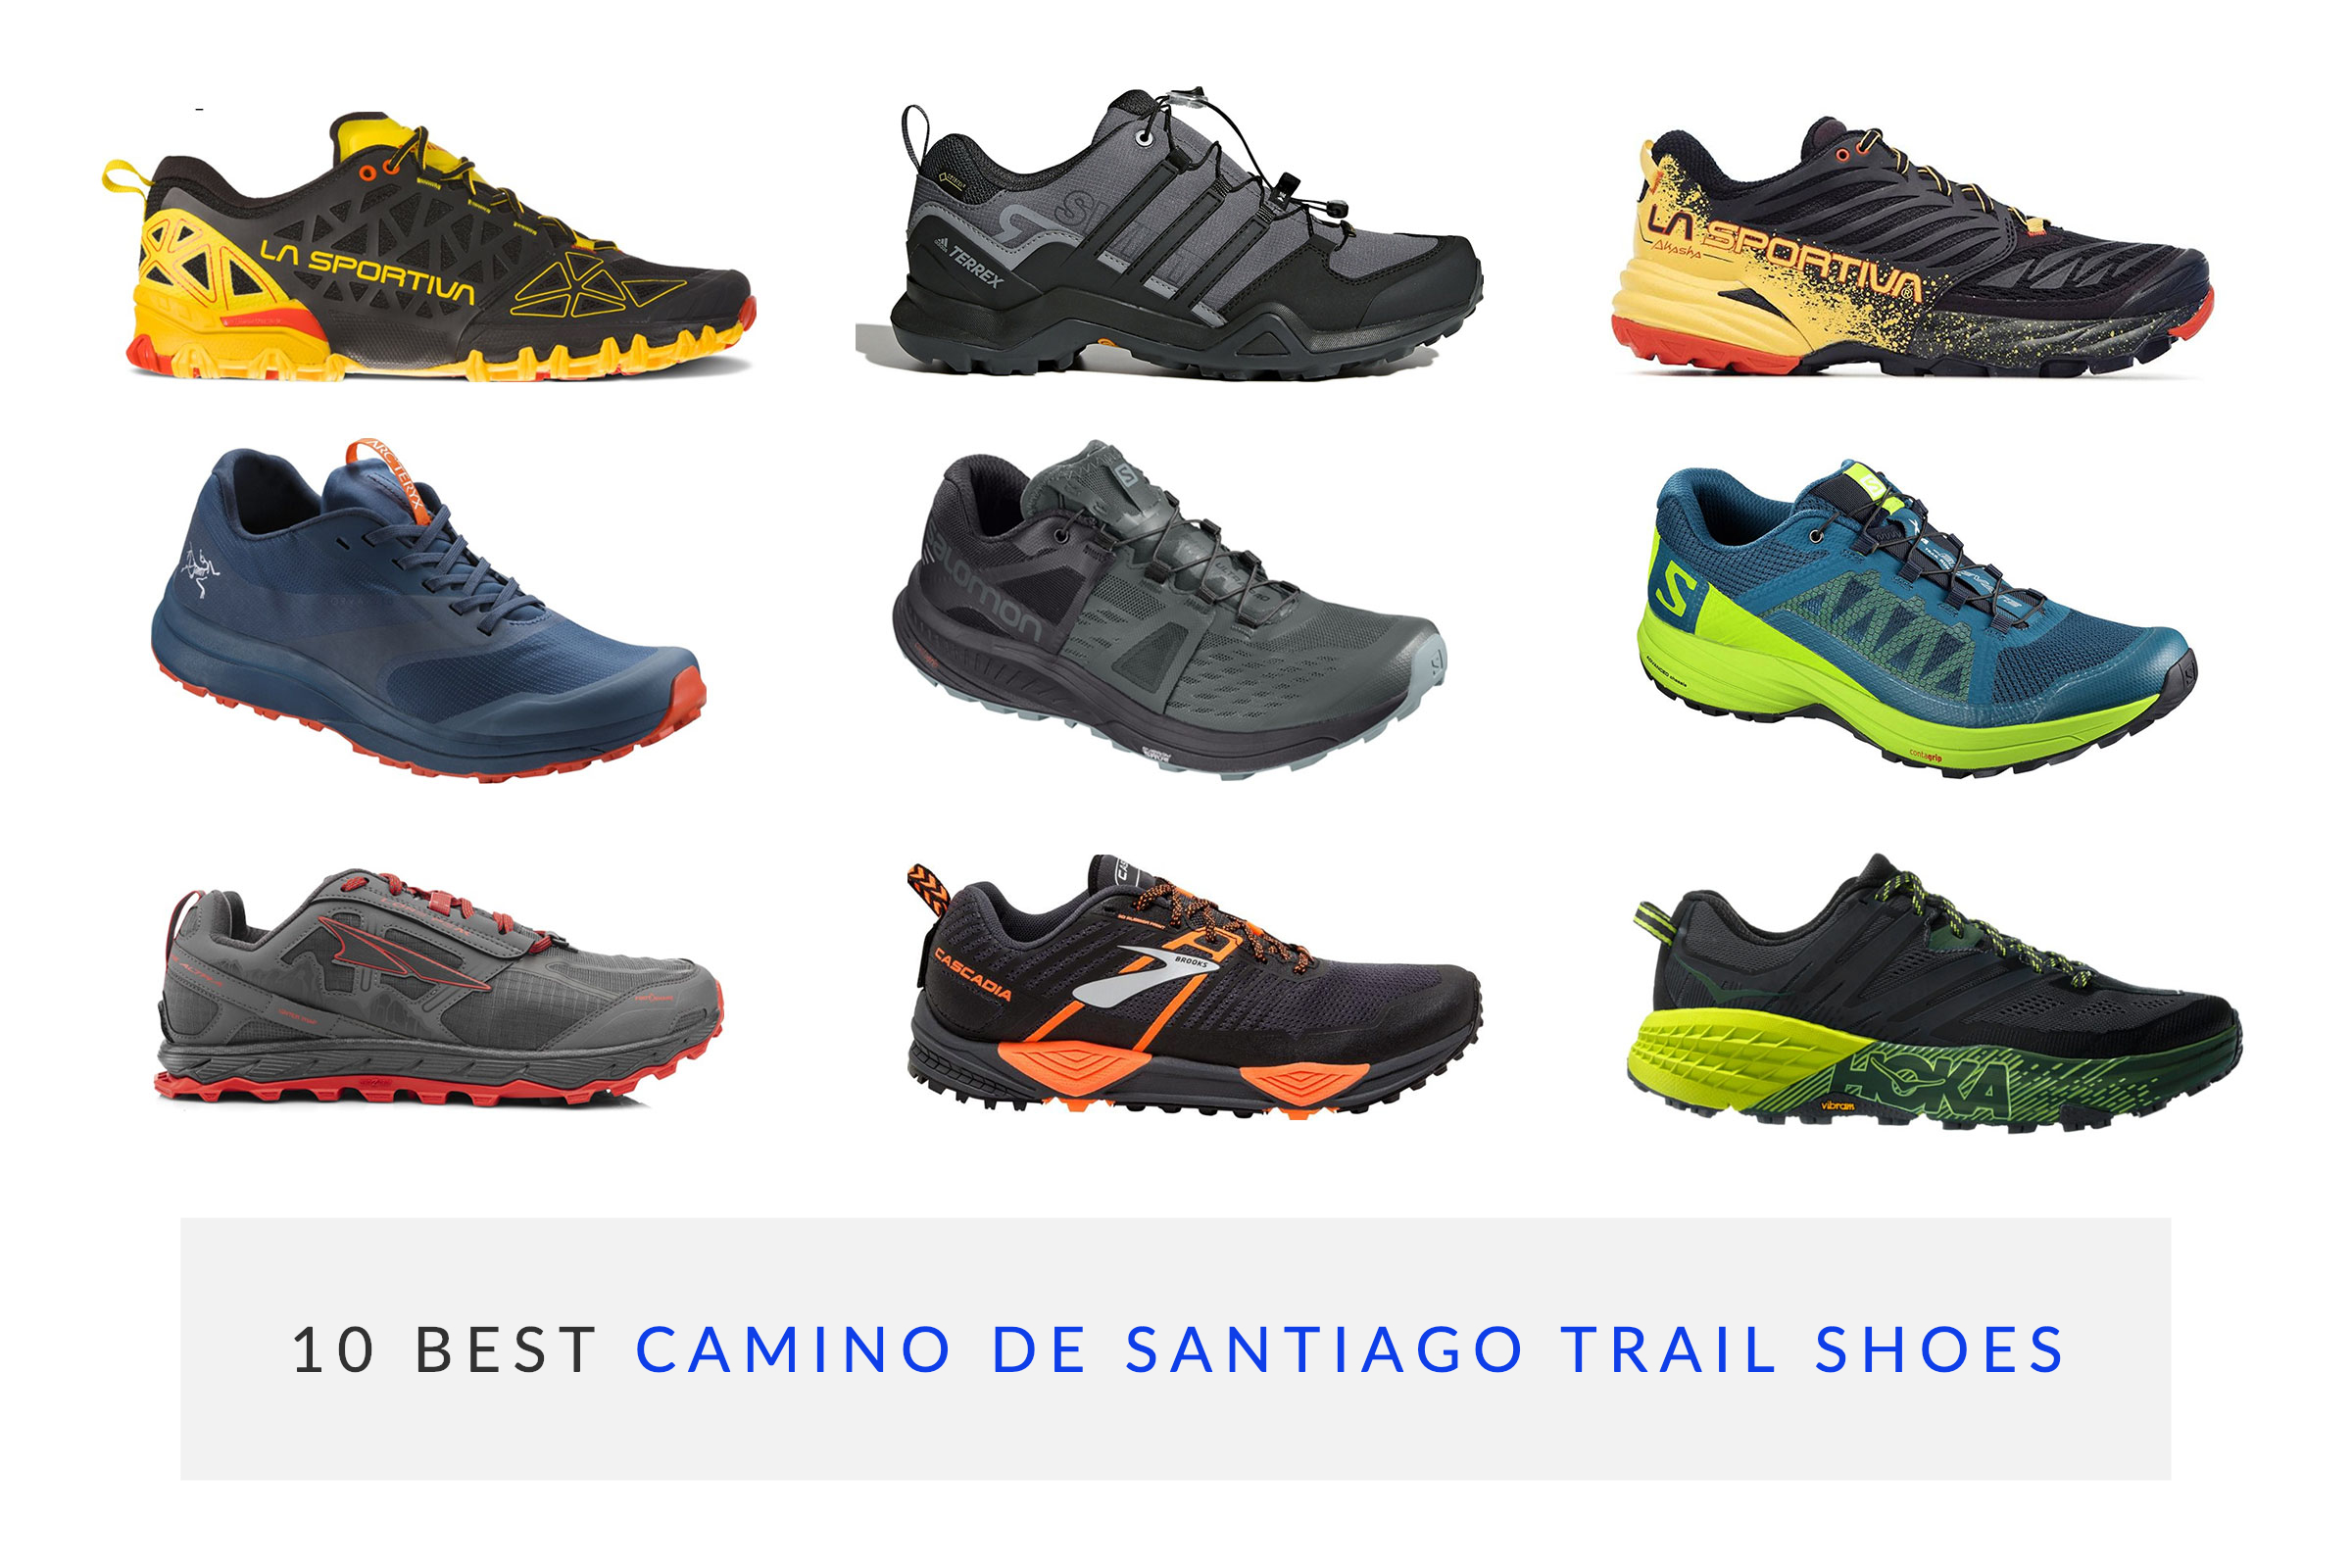 c36f9bf0a 10 Best Trail Shoes For Pilgrims Walking Camino De Santiago 2019 ...